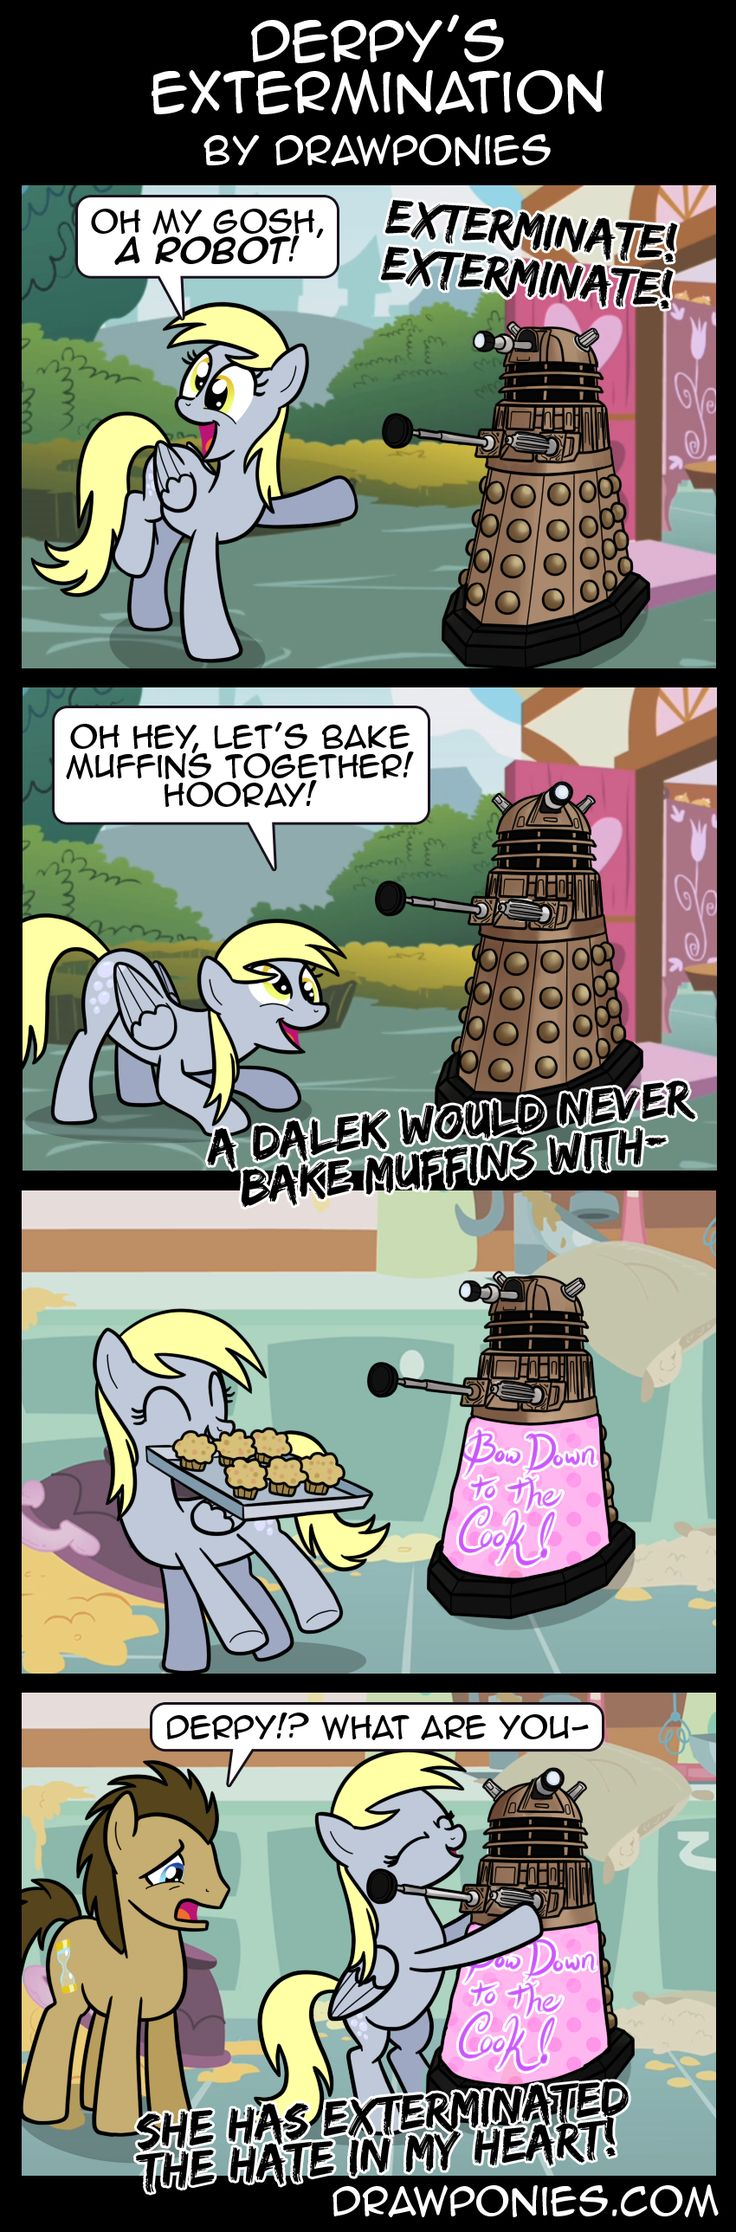 Comic: Derpy's Extermination by drawponies.deviantart.com on @deviantART<<< Derpy could definately do this :)